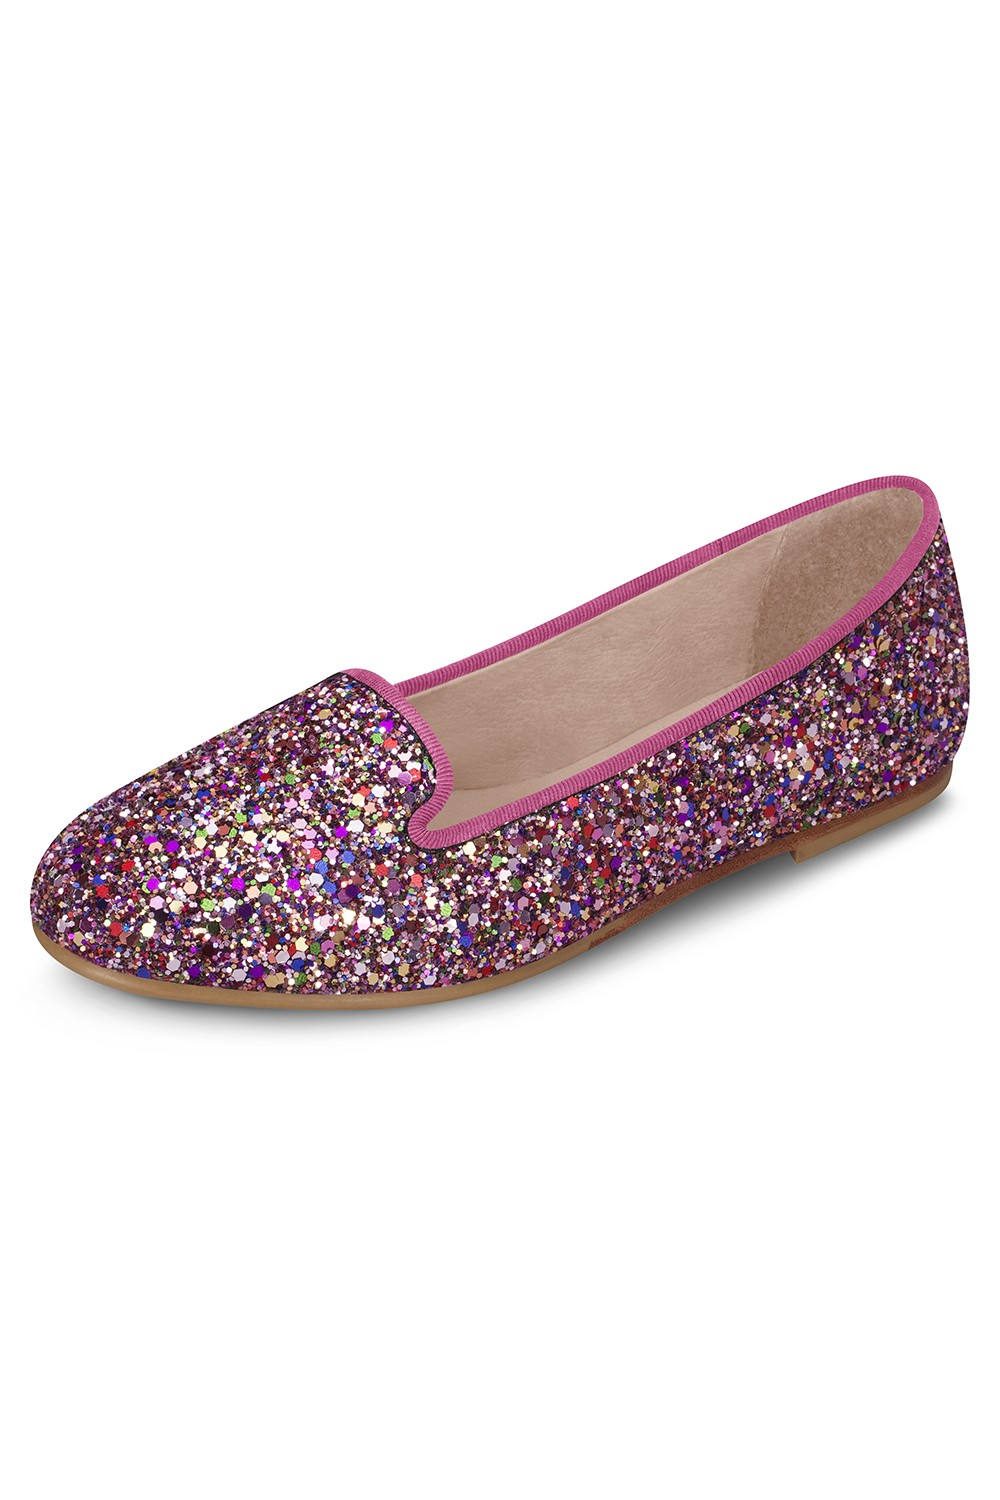 Shira Girls Fashion Shoes